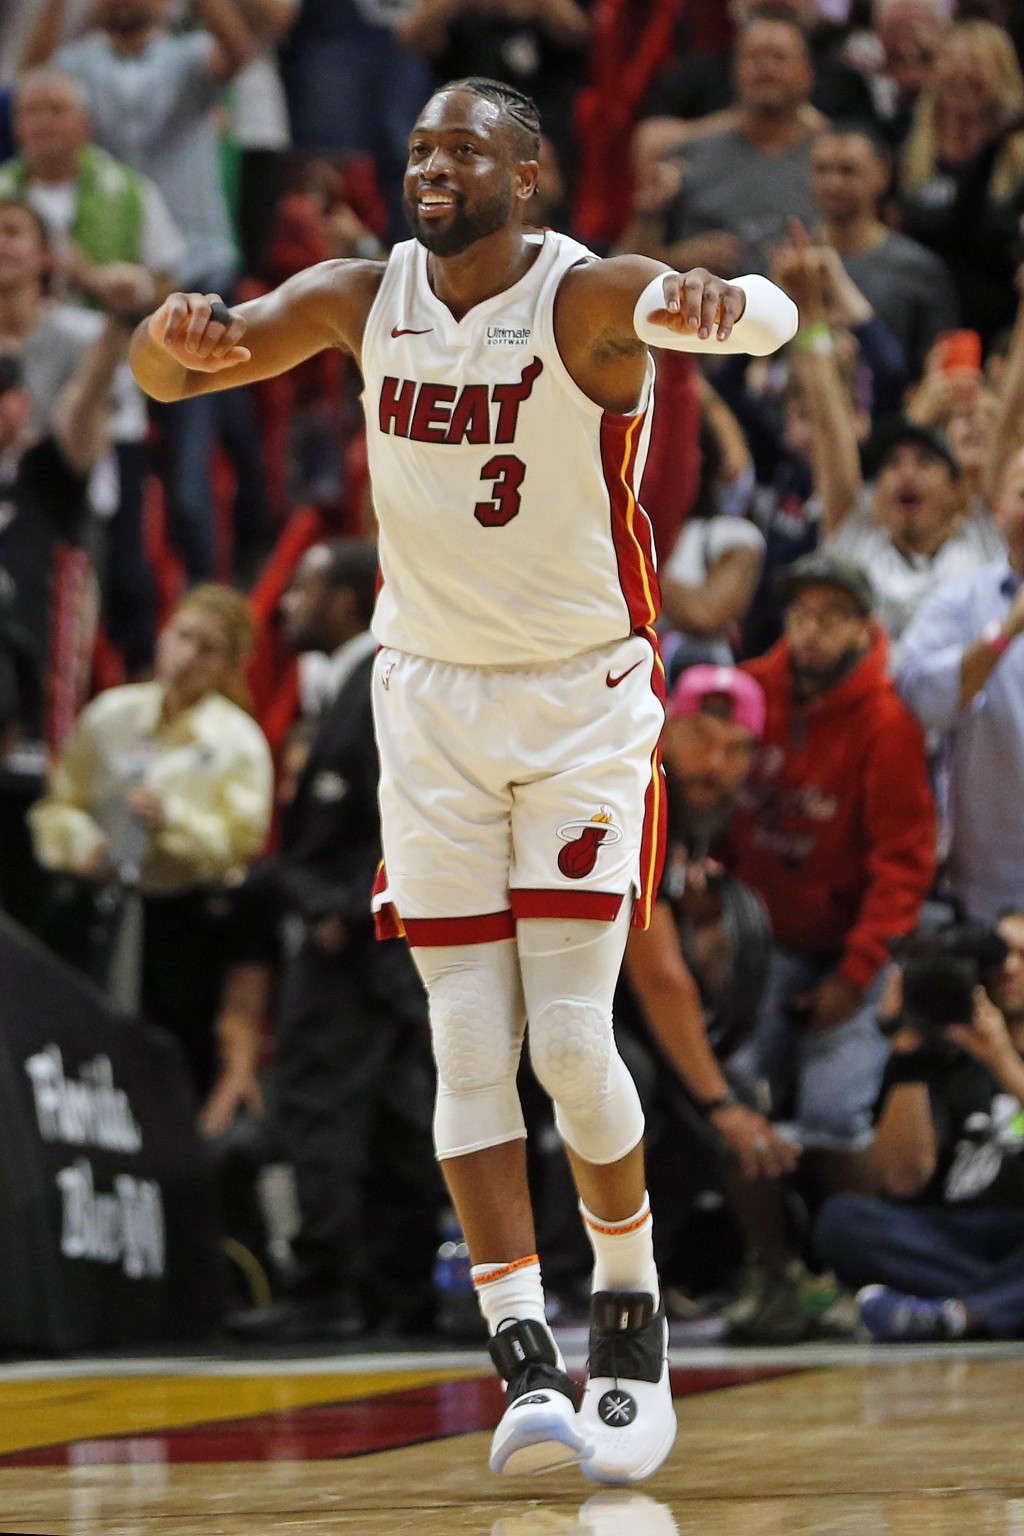 Miami Heat guard Dwyane Wade (3) runs up the court to celebrate the win against the Dallas Mavericks at an NBA basketball game, Thursday, March 28, 20